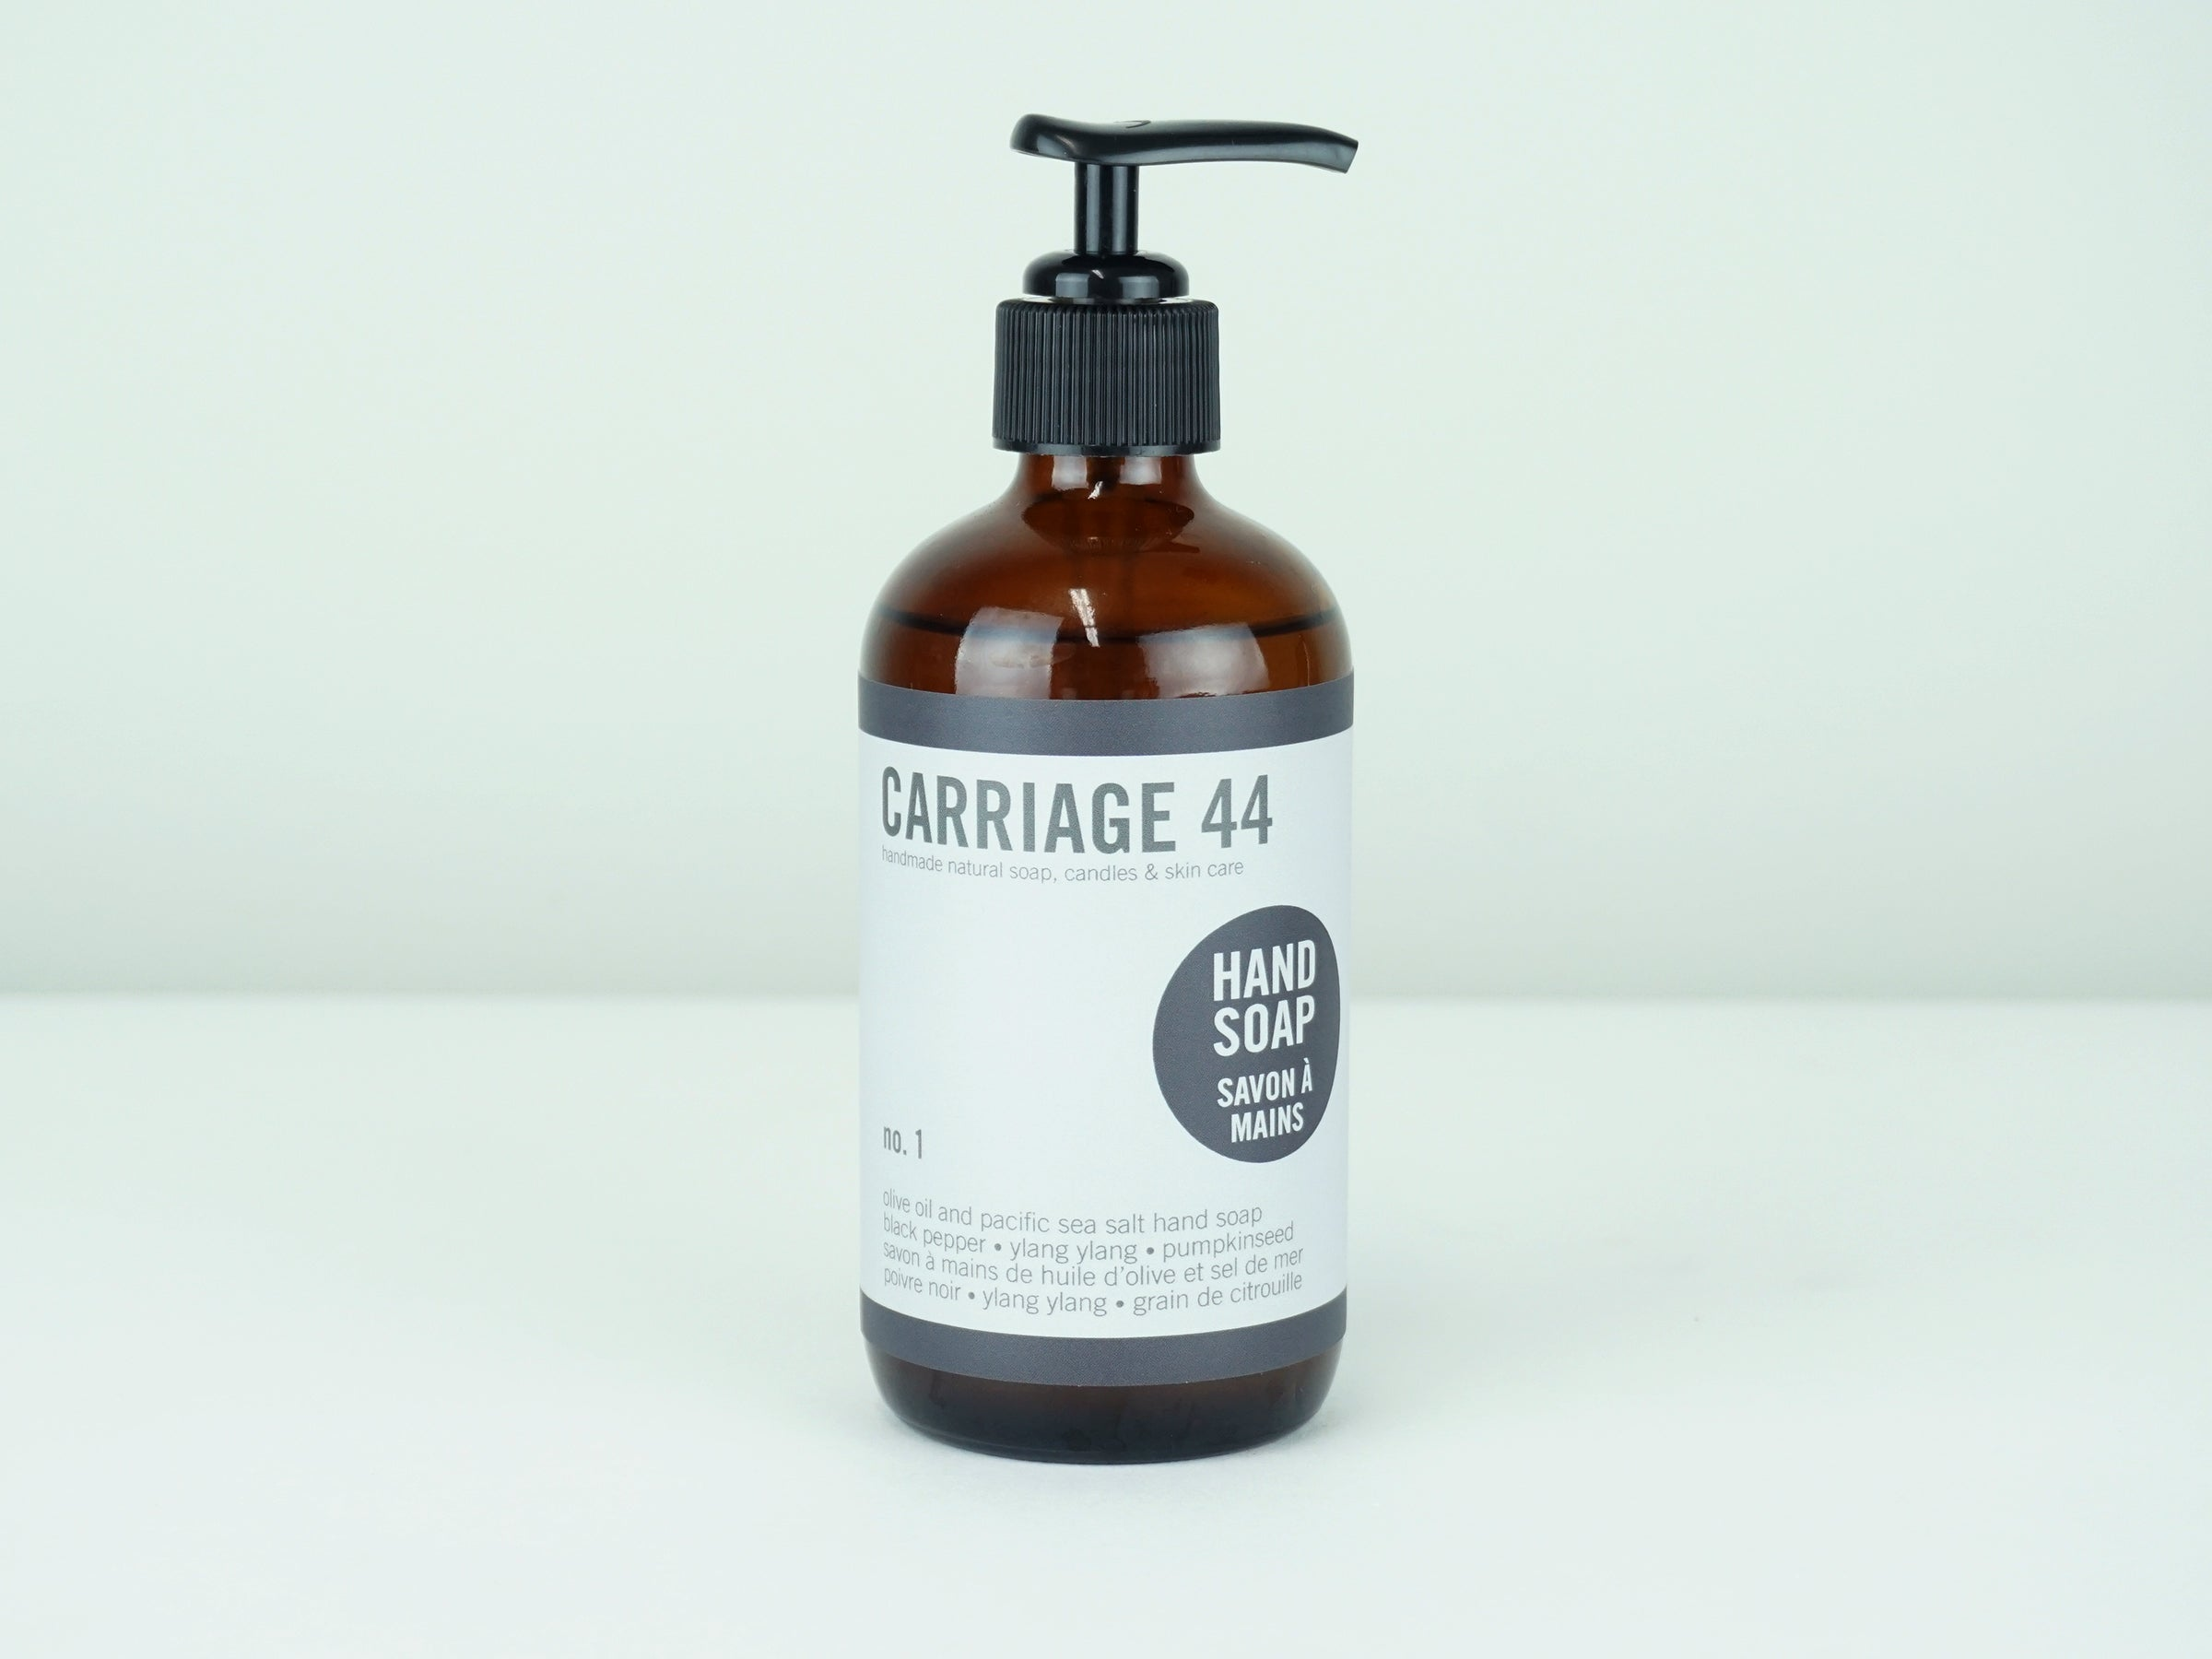 Carriage 44 No. 1 Hand Soap